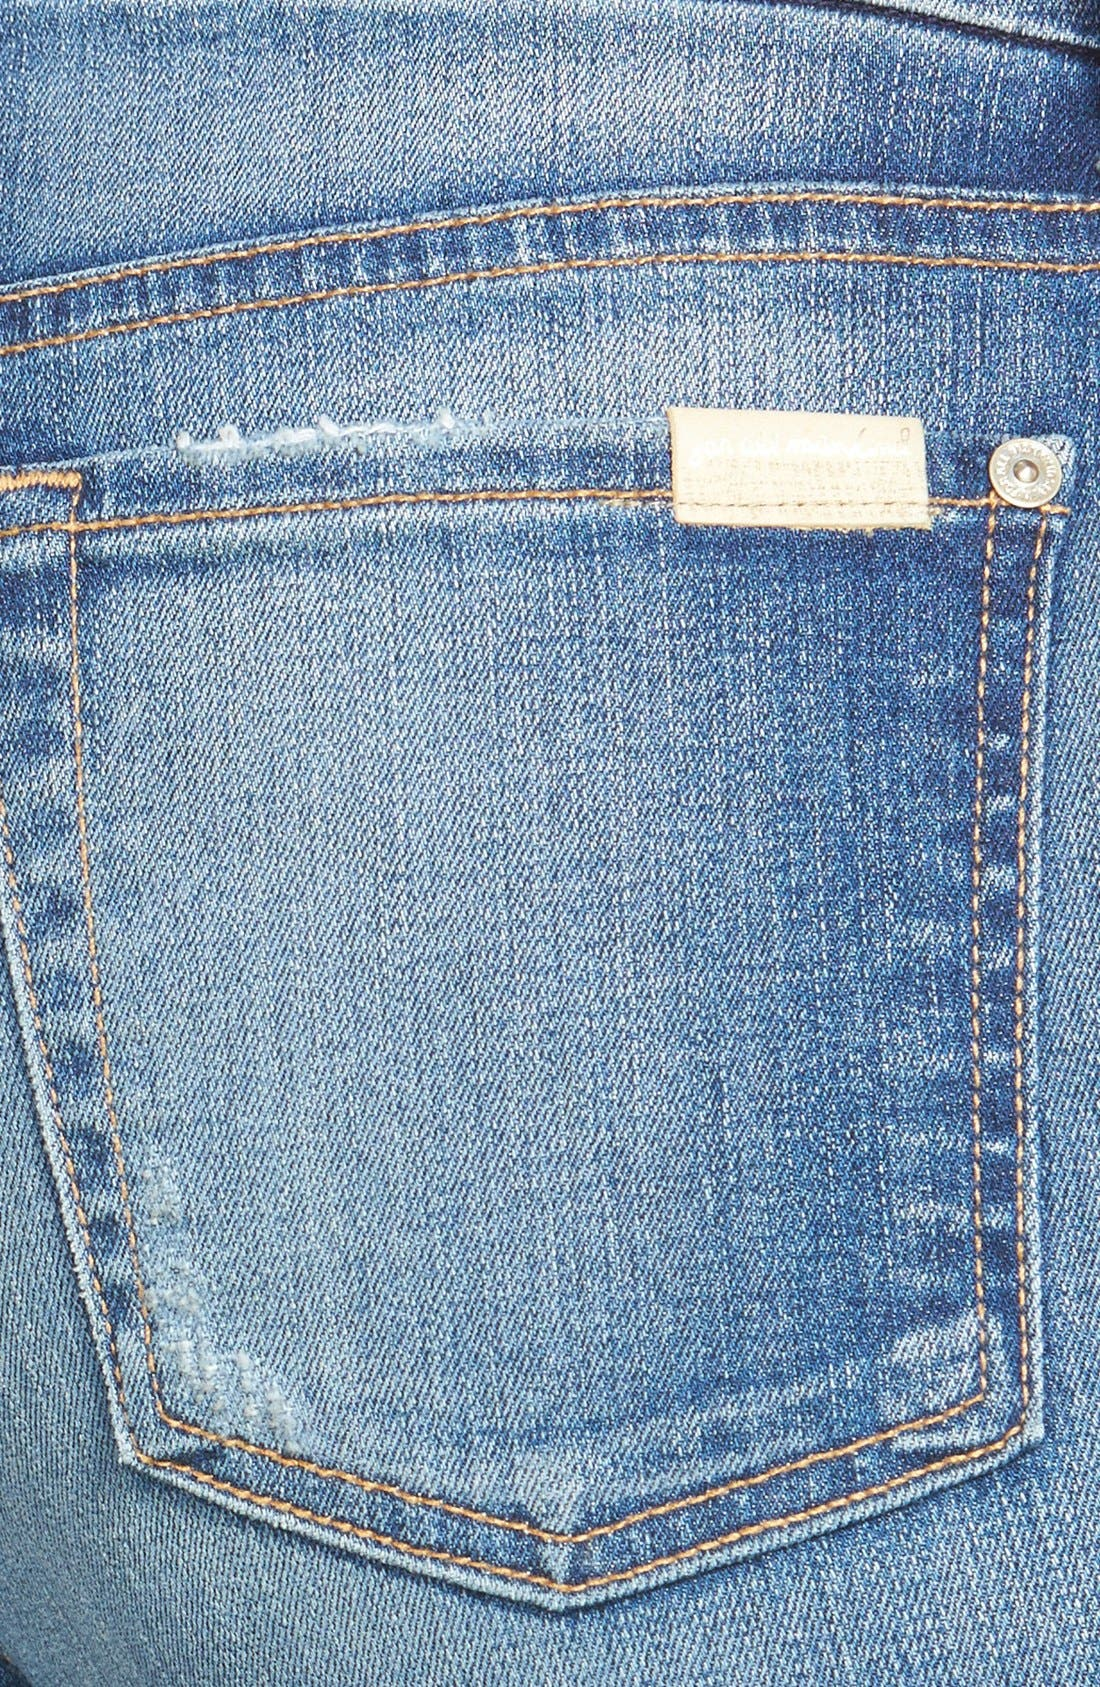 Alternate Image 3  - 7 For All Mankind® Mid Rise Skinny Jeans (Distressed Authentic Light)